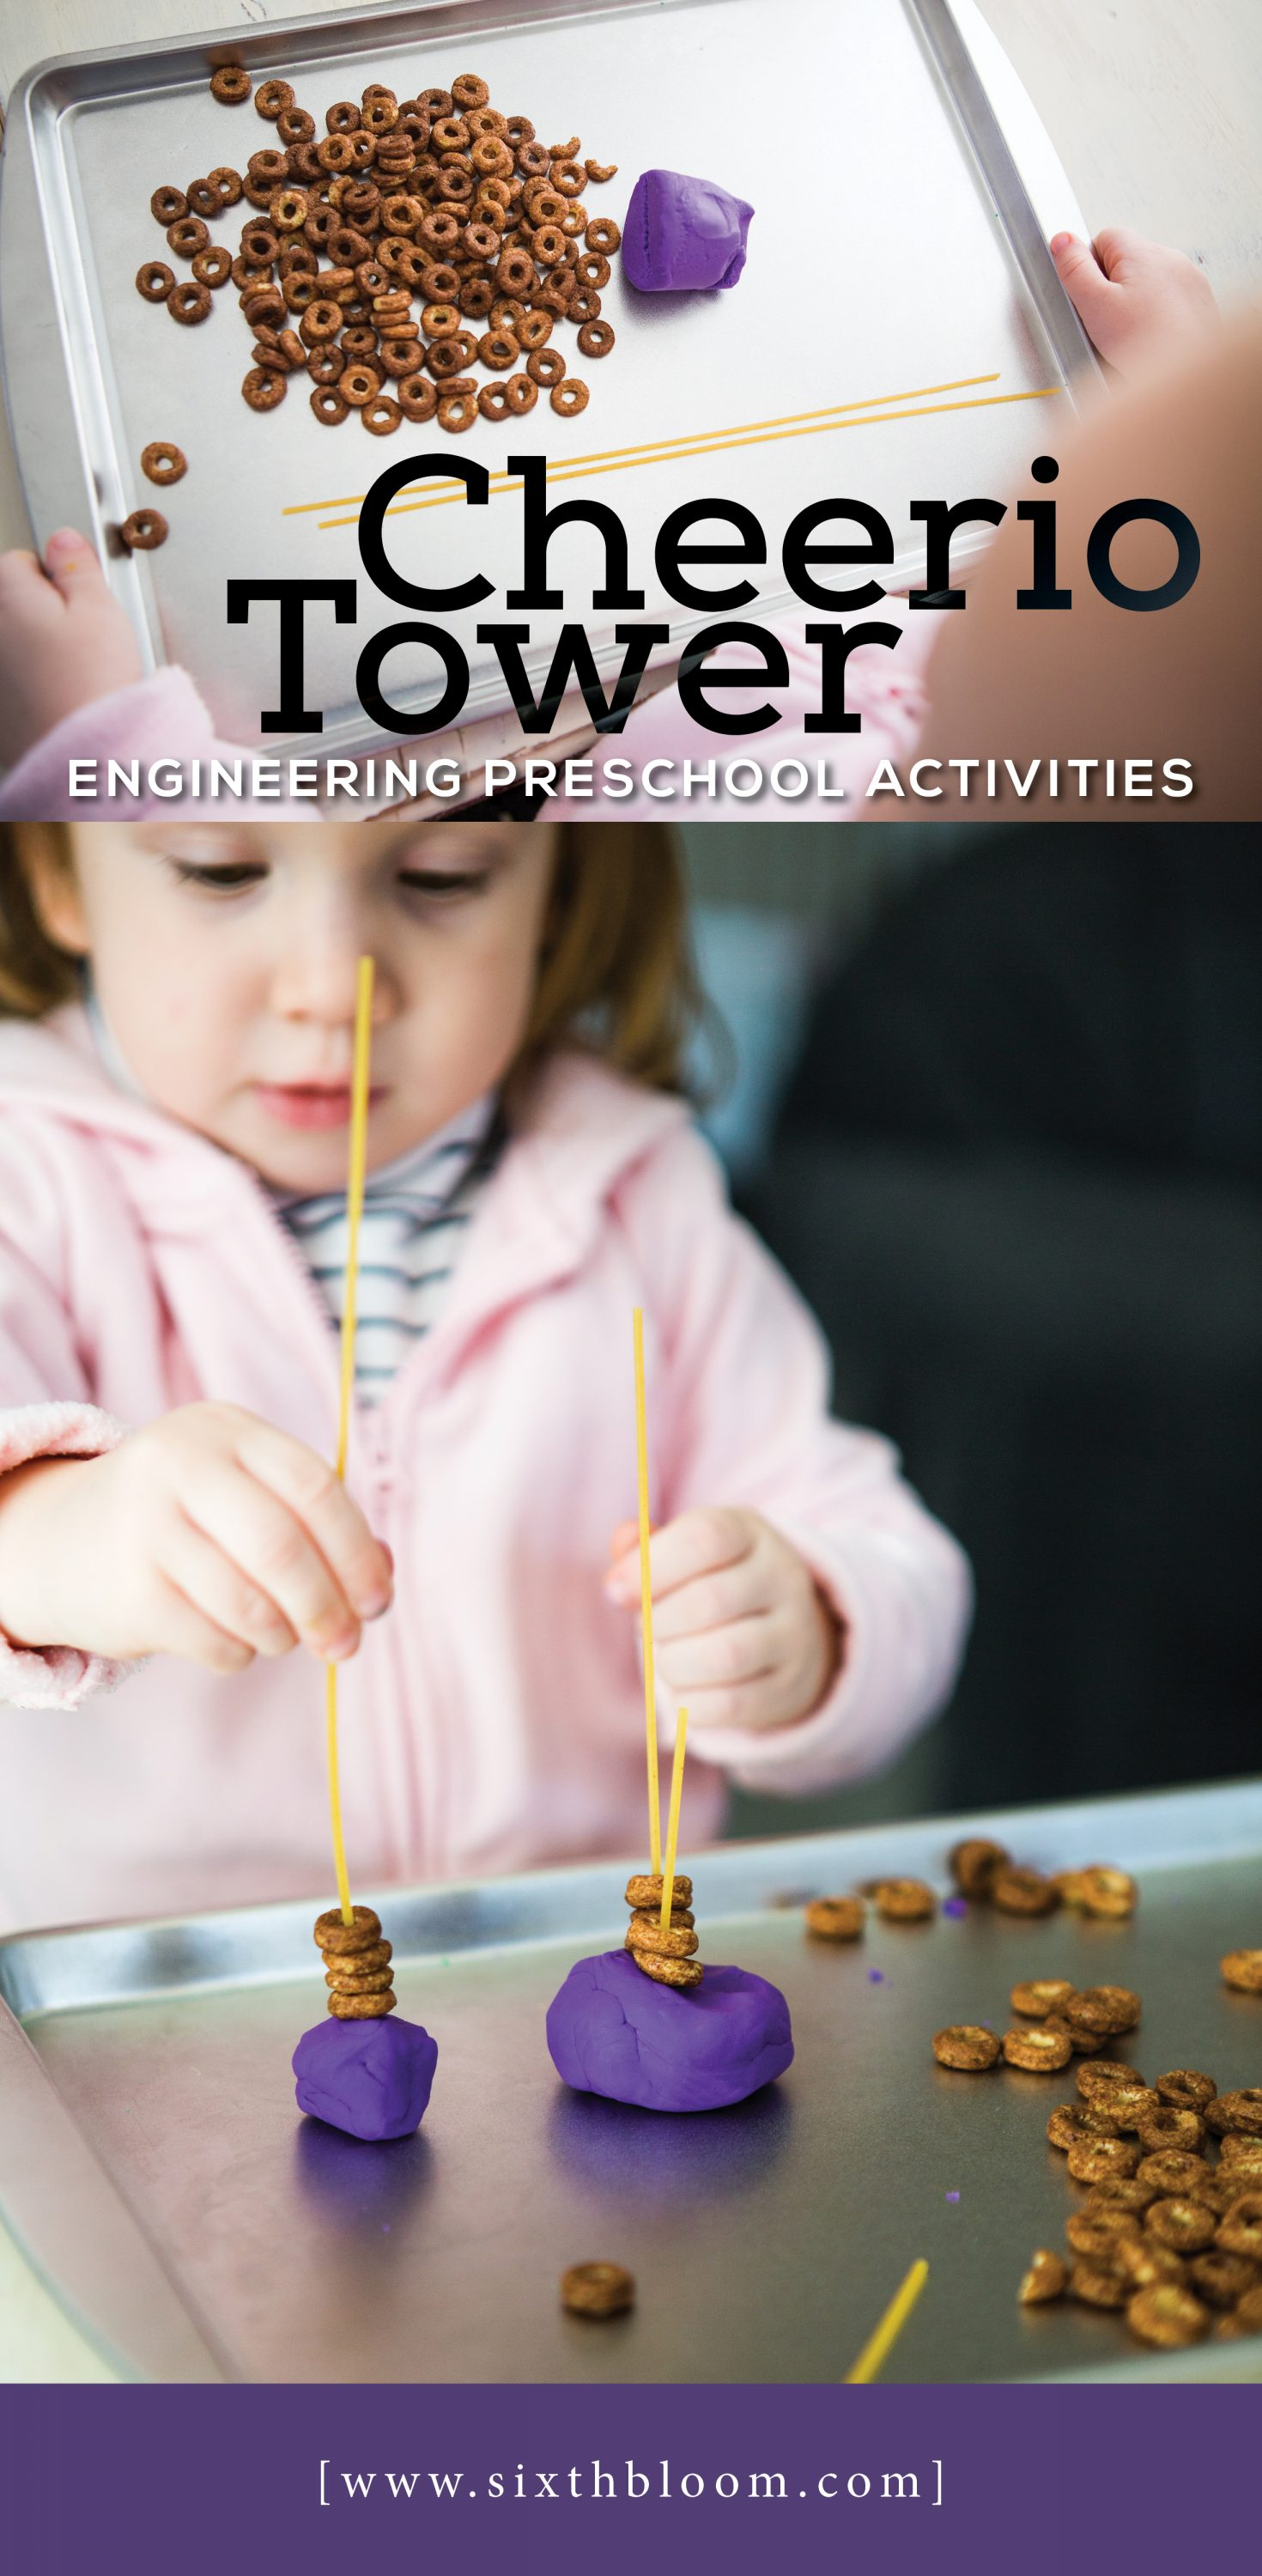 Engineering Preschool Activities